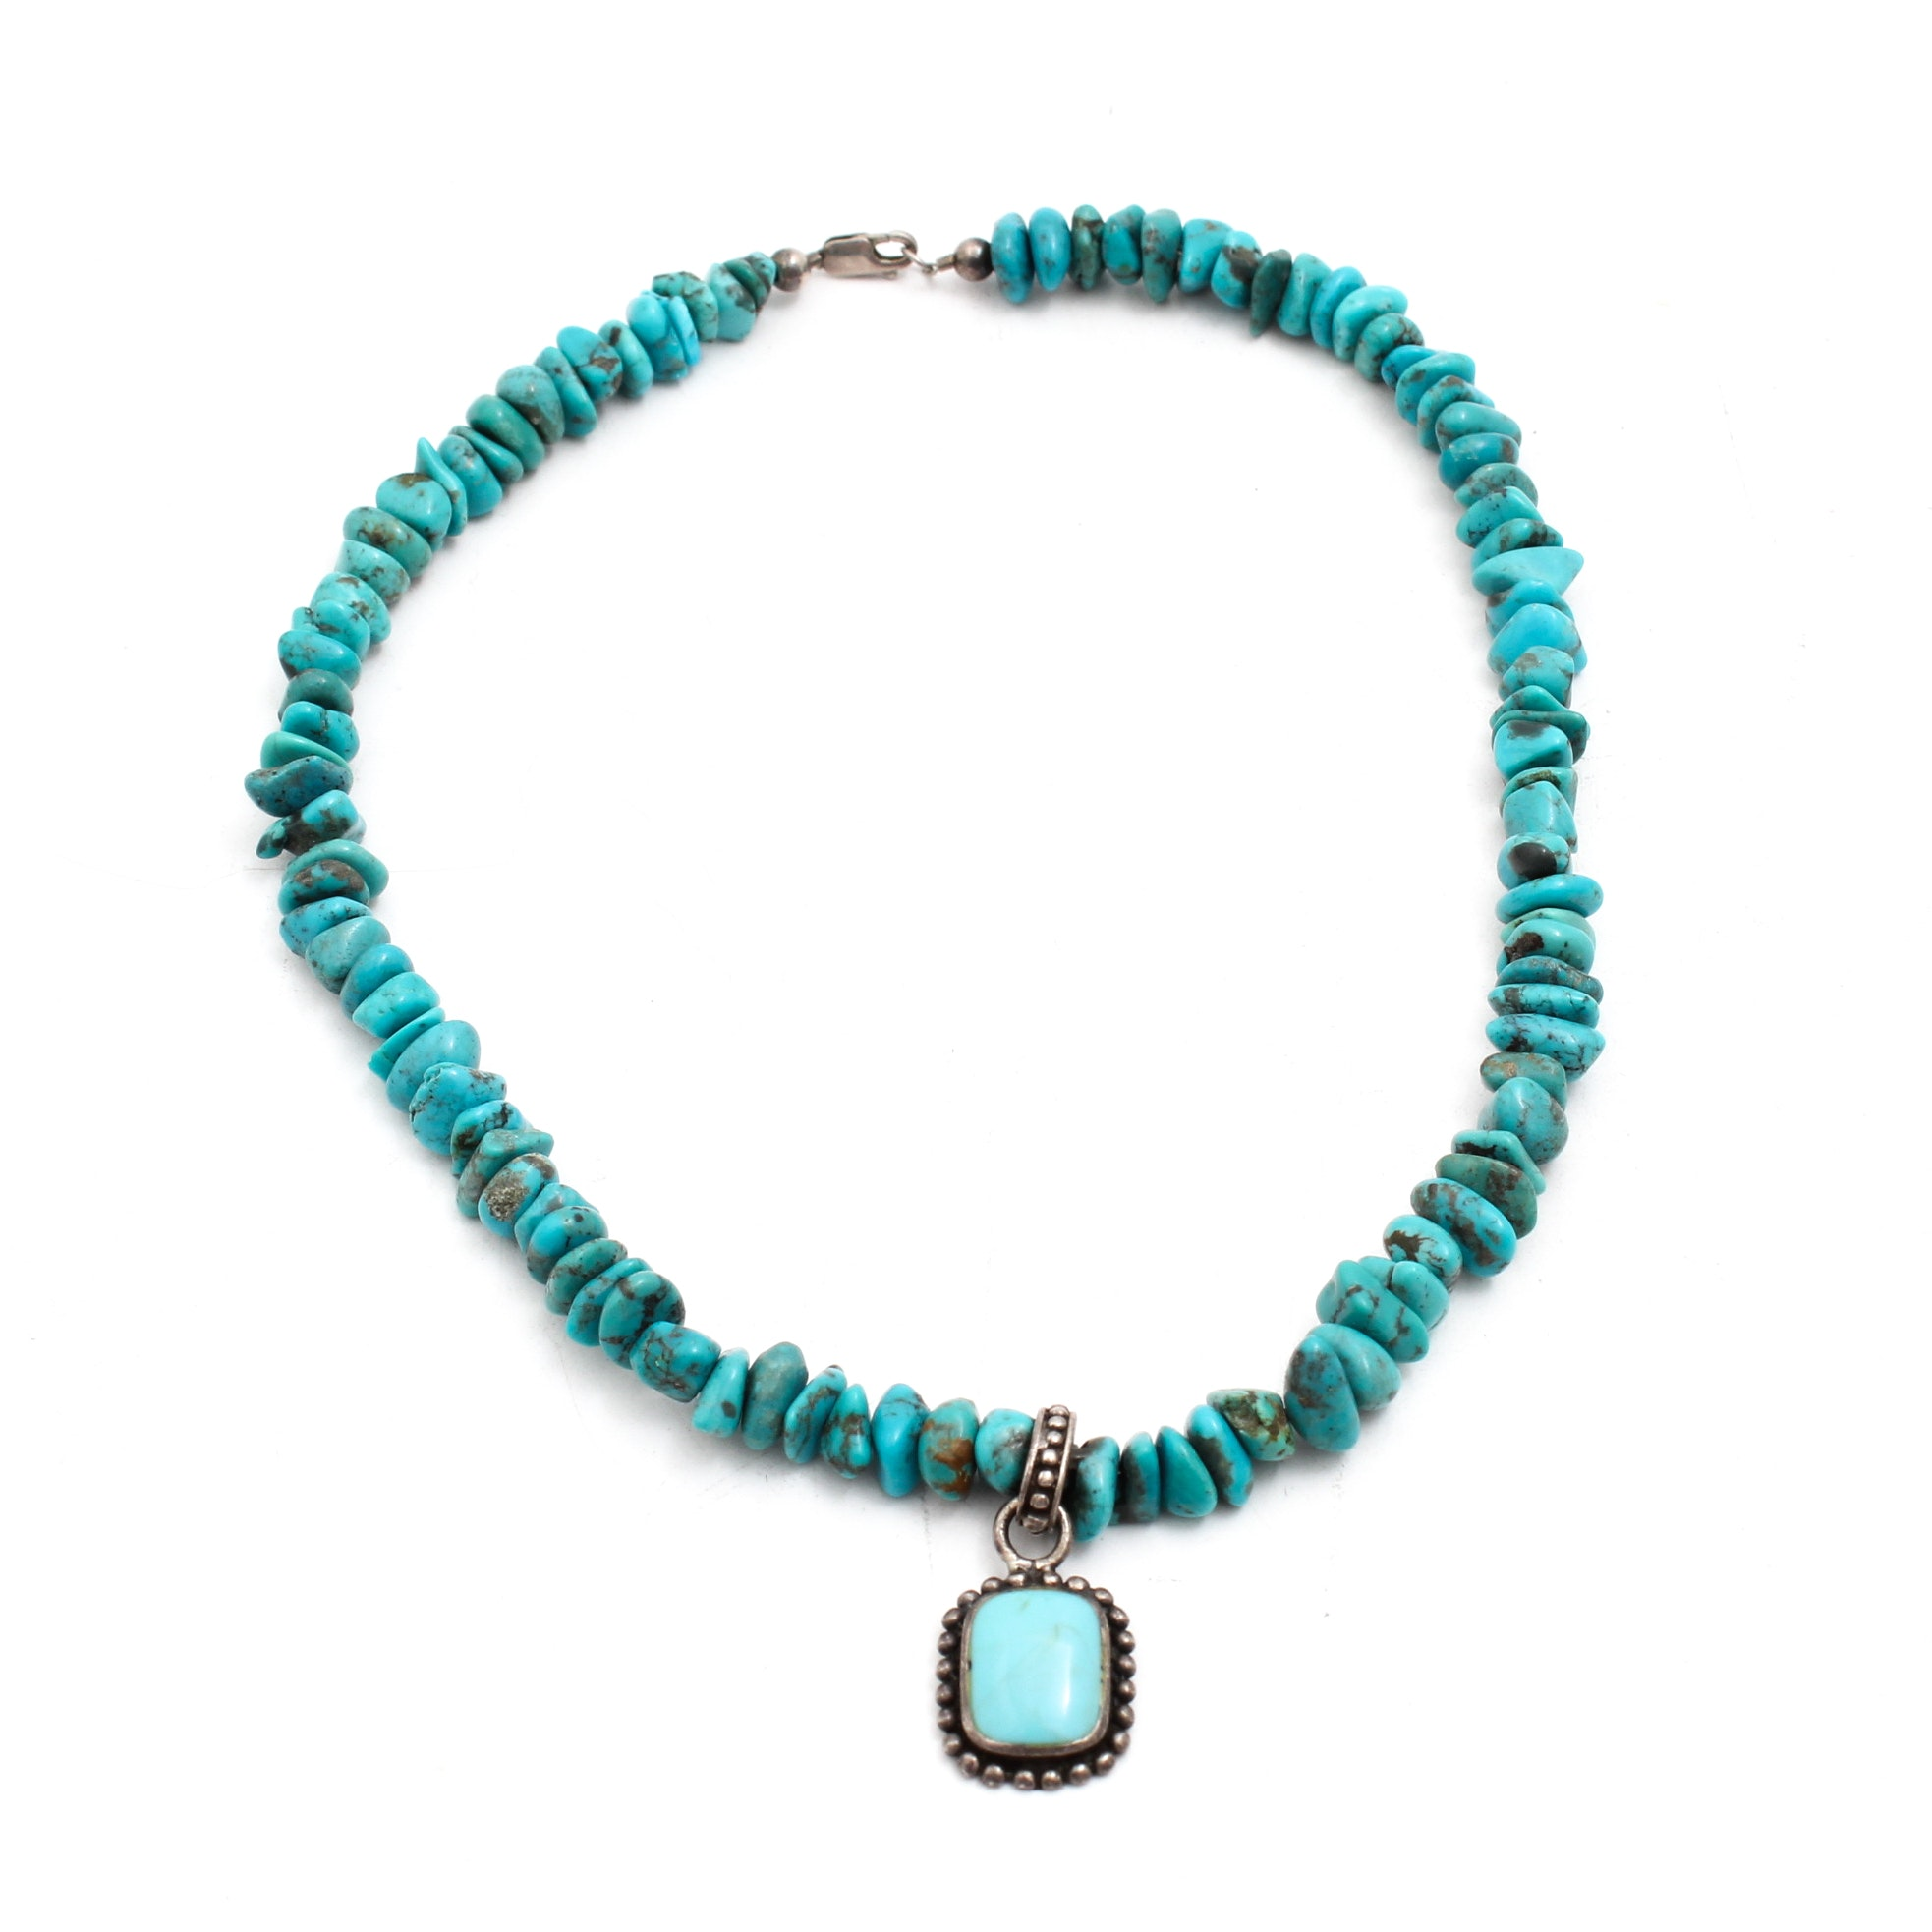 Southwestern Style Turquoise and Sterling Silver Necklace